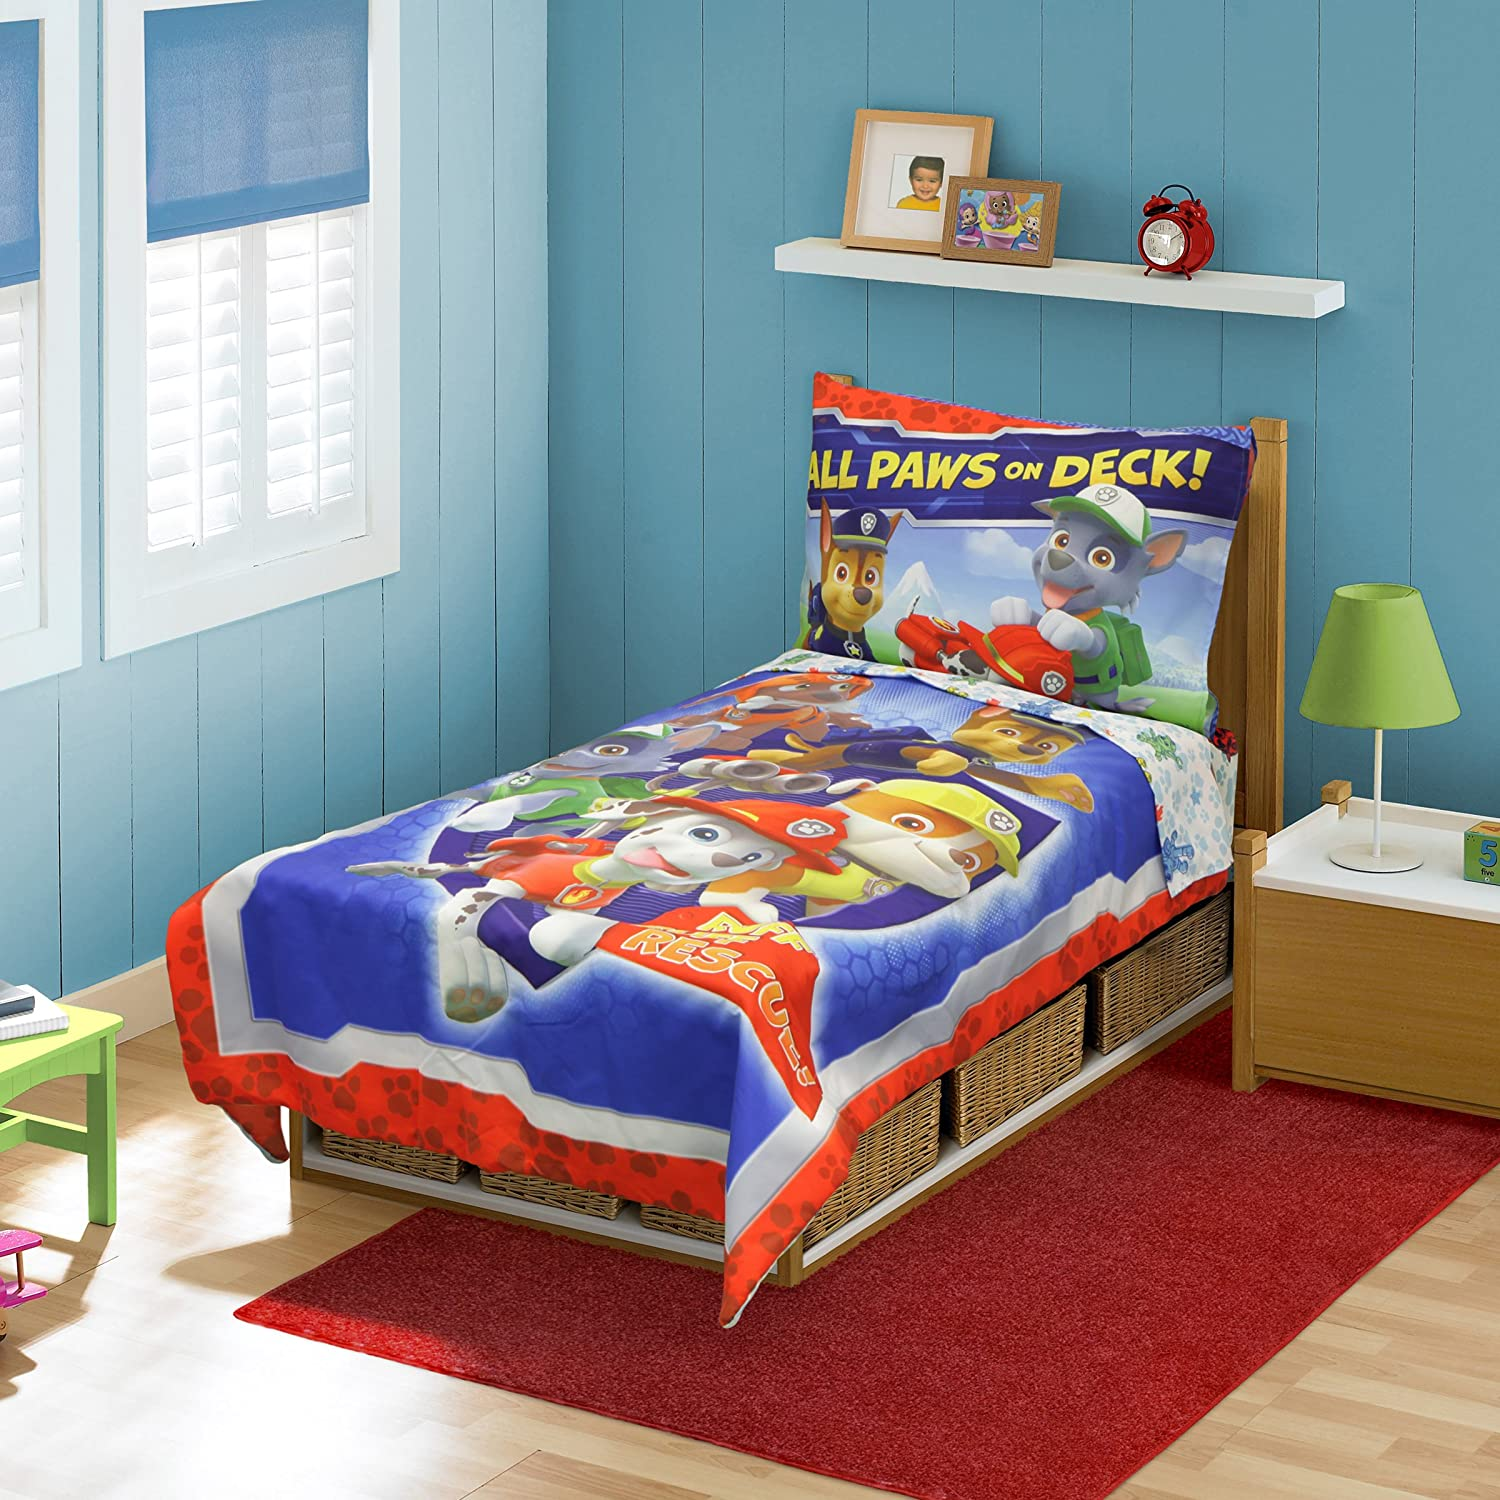 Amazon.com : Paw Patrol Toddler Bed Set, Blue : Baby